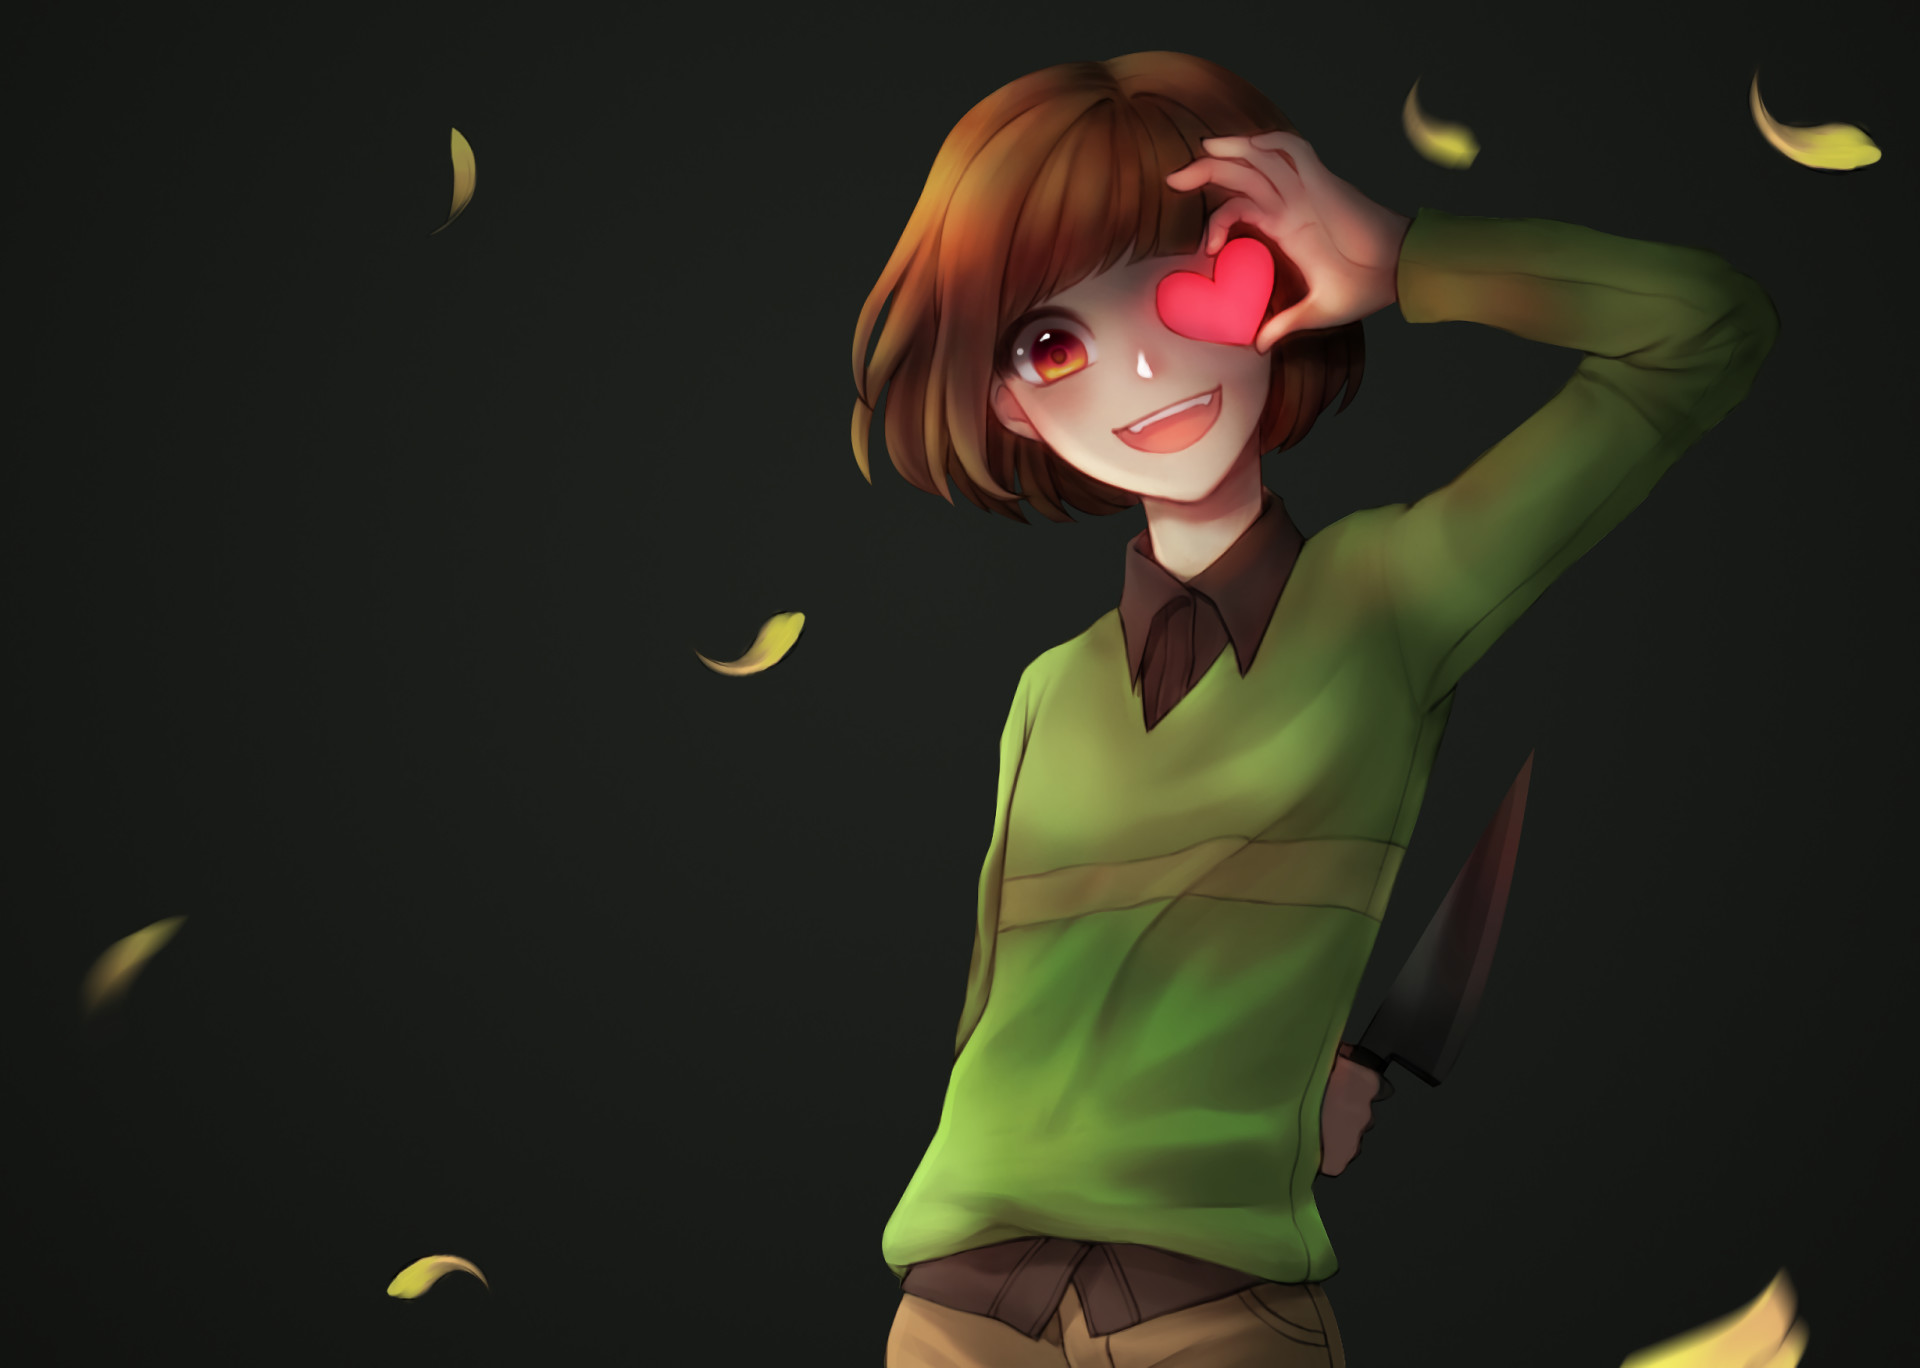 Undertale Chara Wallpaper 77 Images